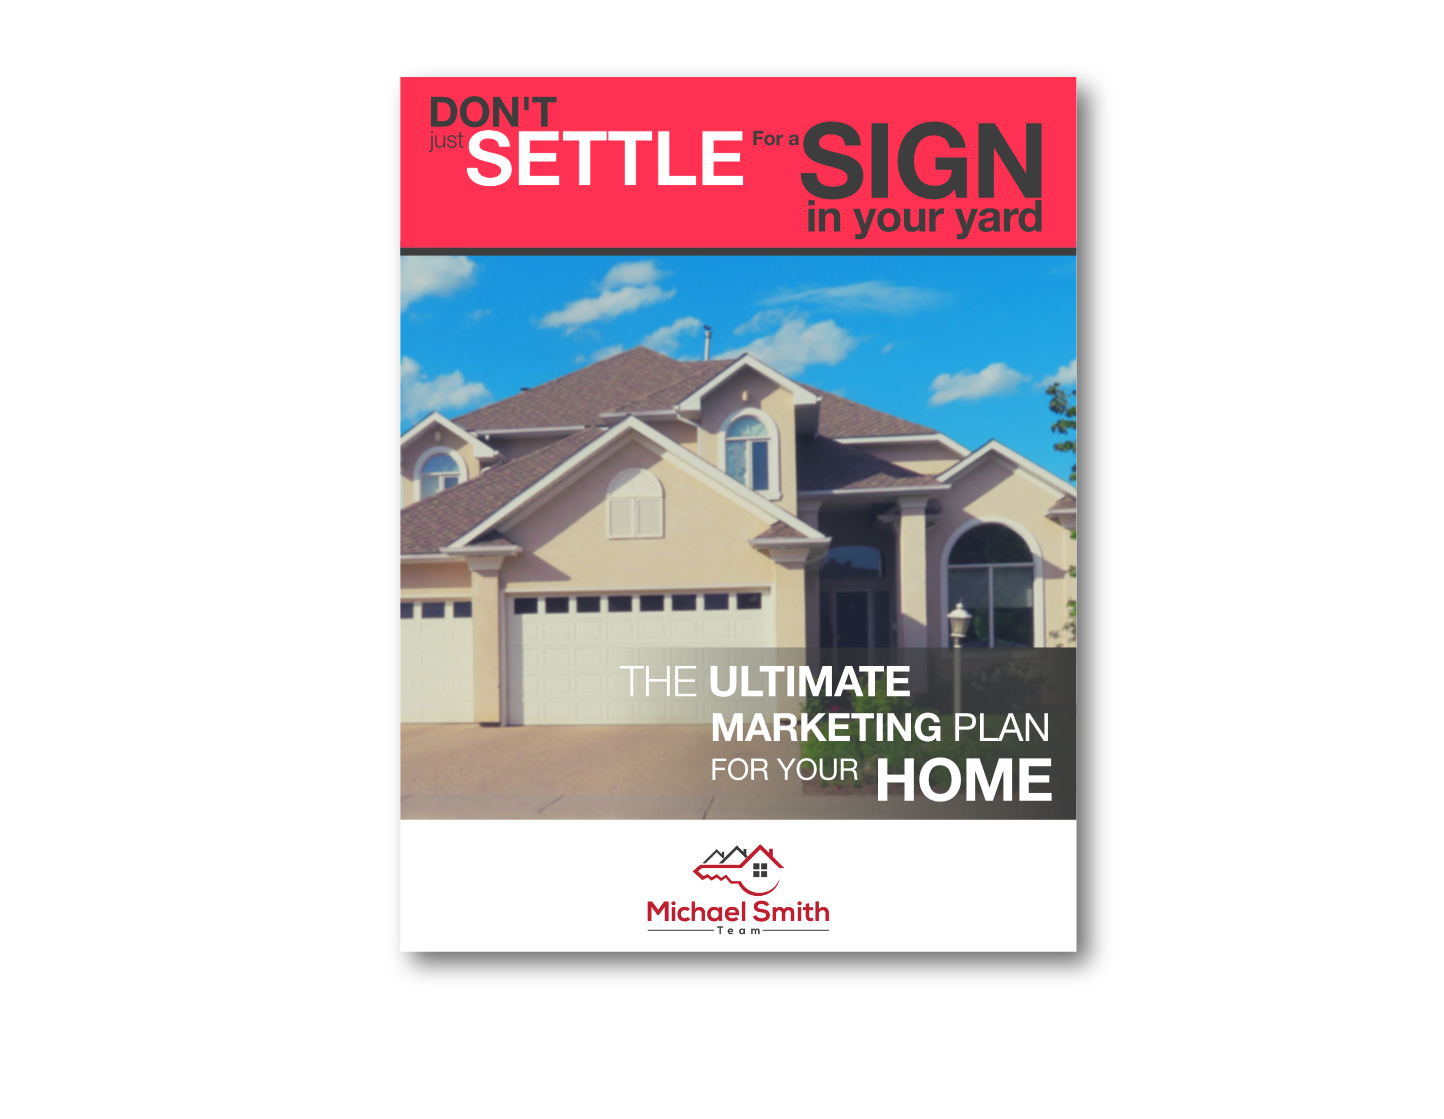 The Ultimate Marketing Plan for your Home. See what you've been missing